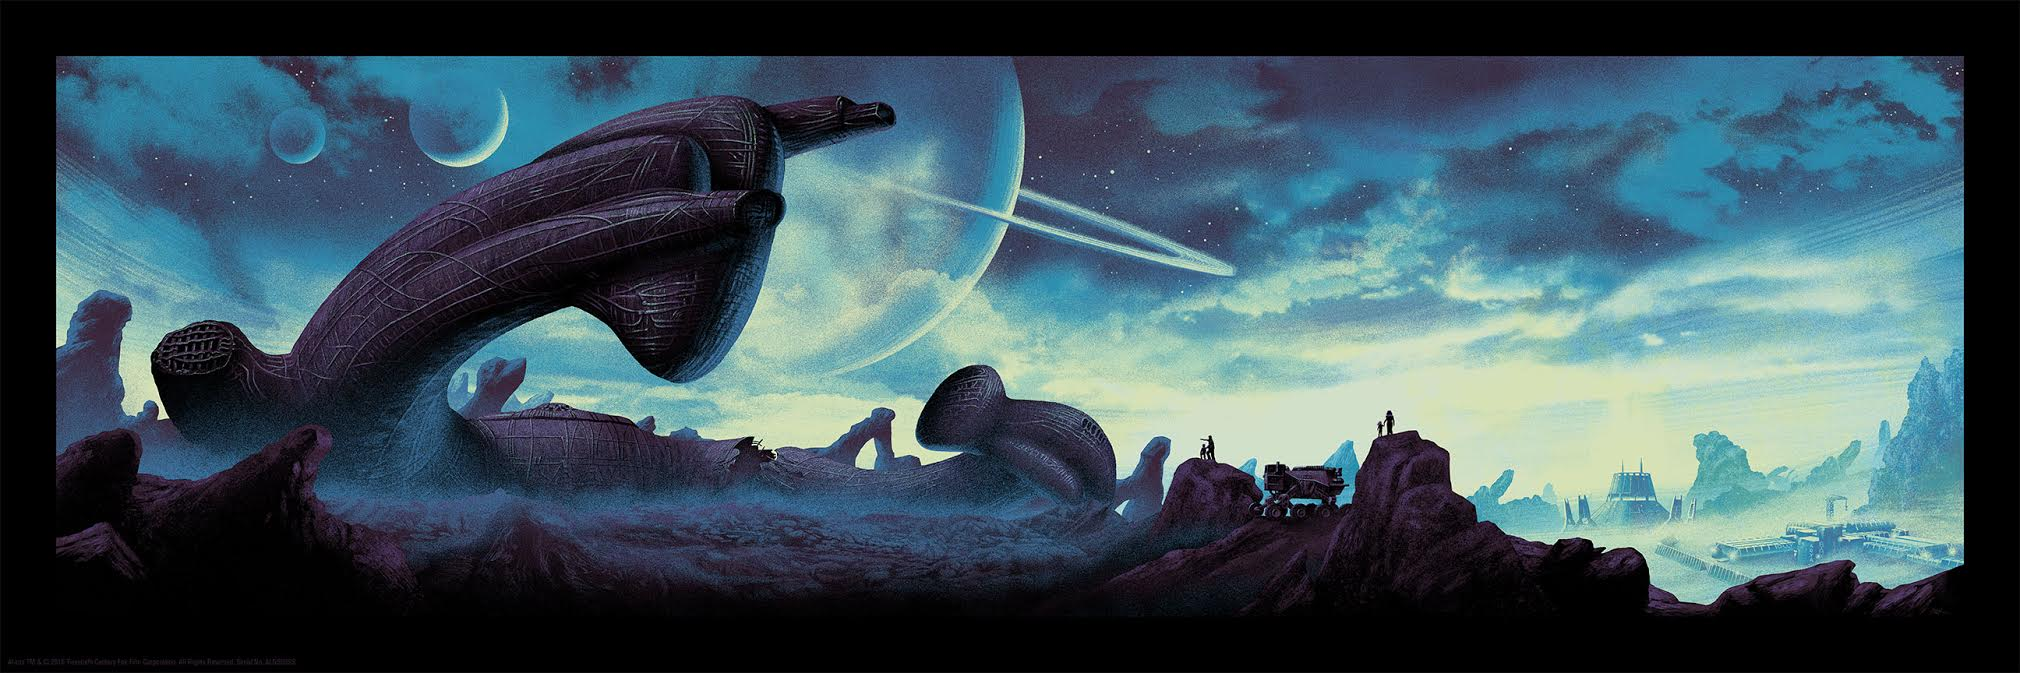 """""""should we take a look inside?"""" by Mark Englert.  12"""" x 36"""" 7-color Screenprint w/ GID.  Timed edition .  $50"""